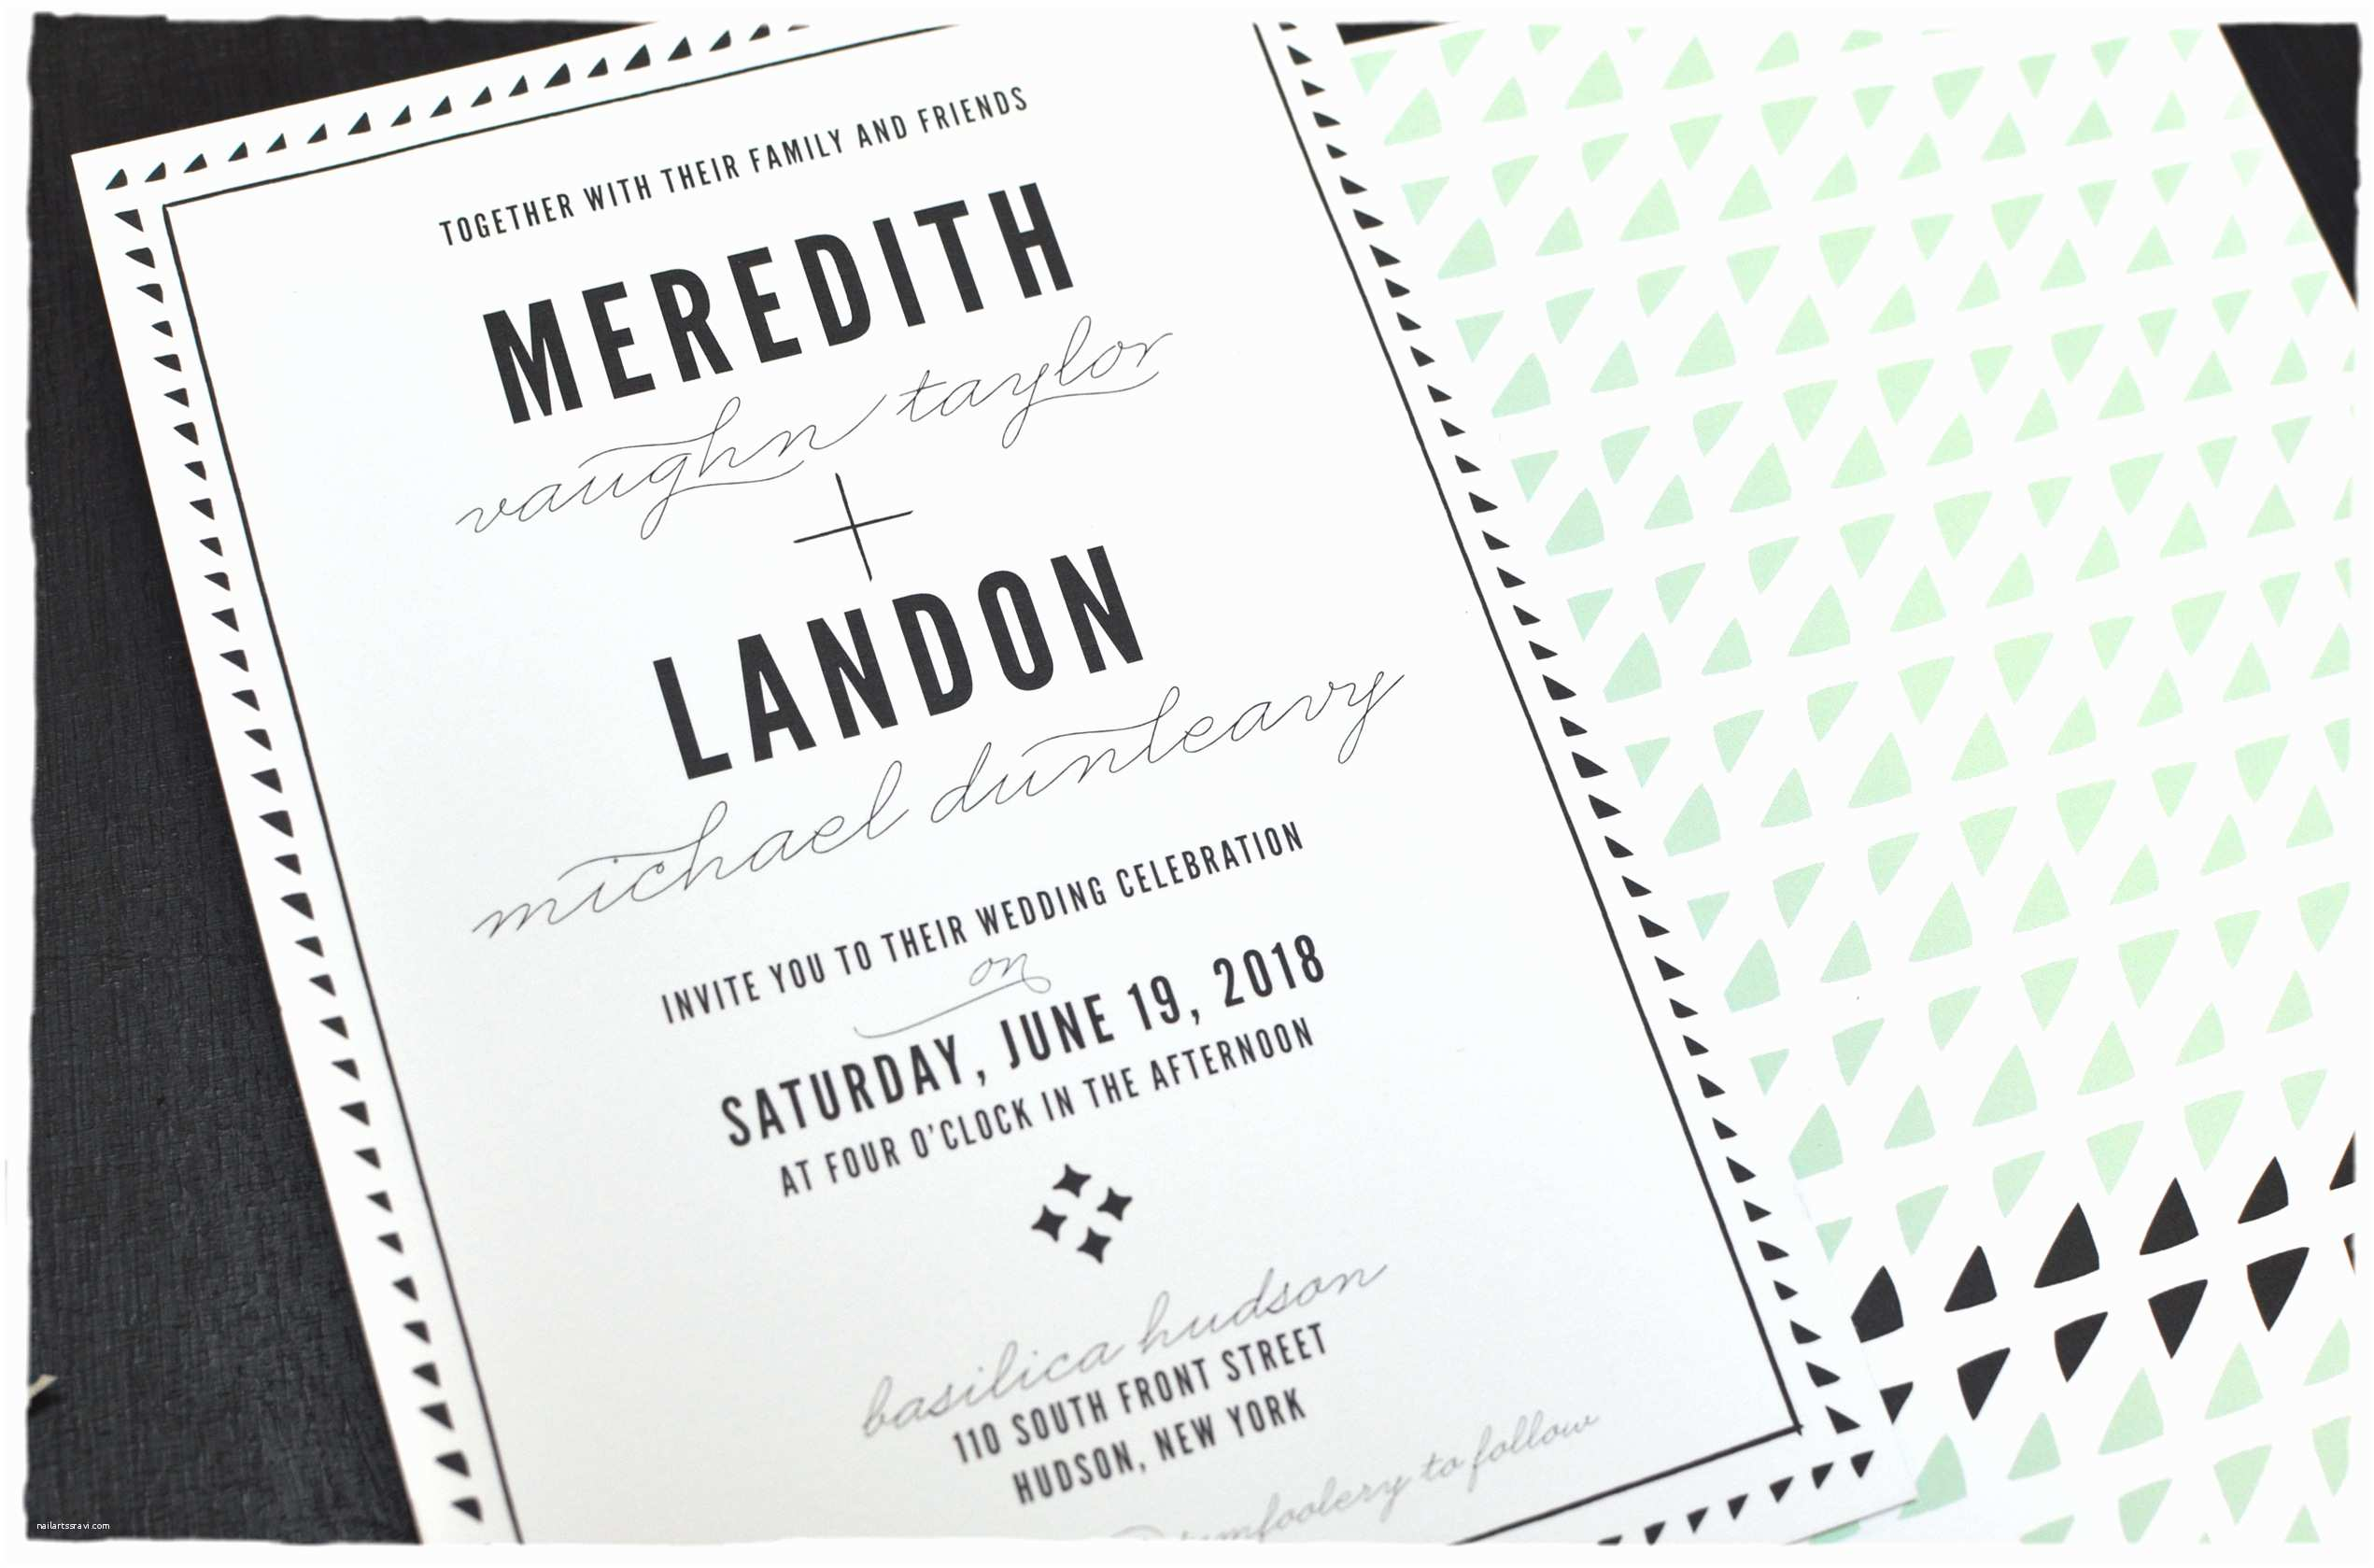 Hipster Wedding Invitations Hipster Invitation Maker Gallery Invitation Sample and